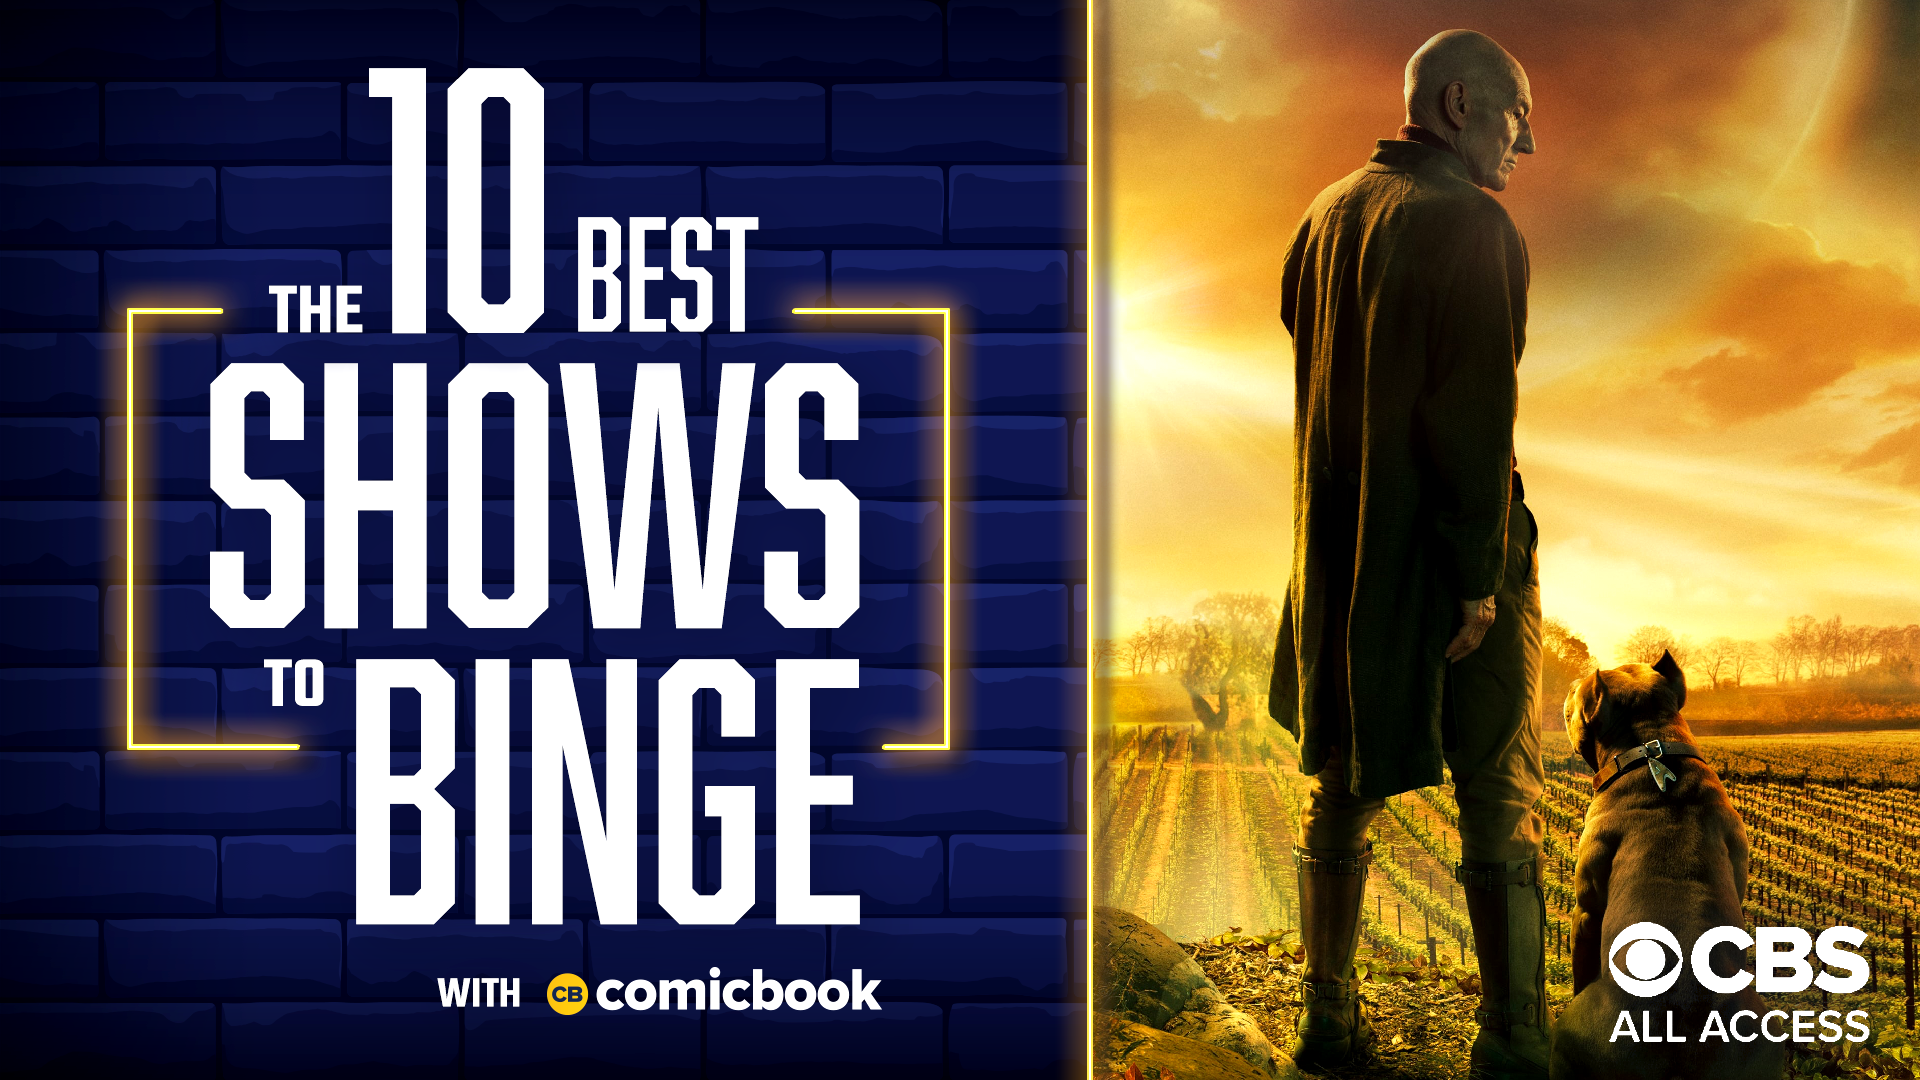 10 Best Shows to Binge on CBS All Access